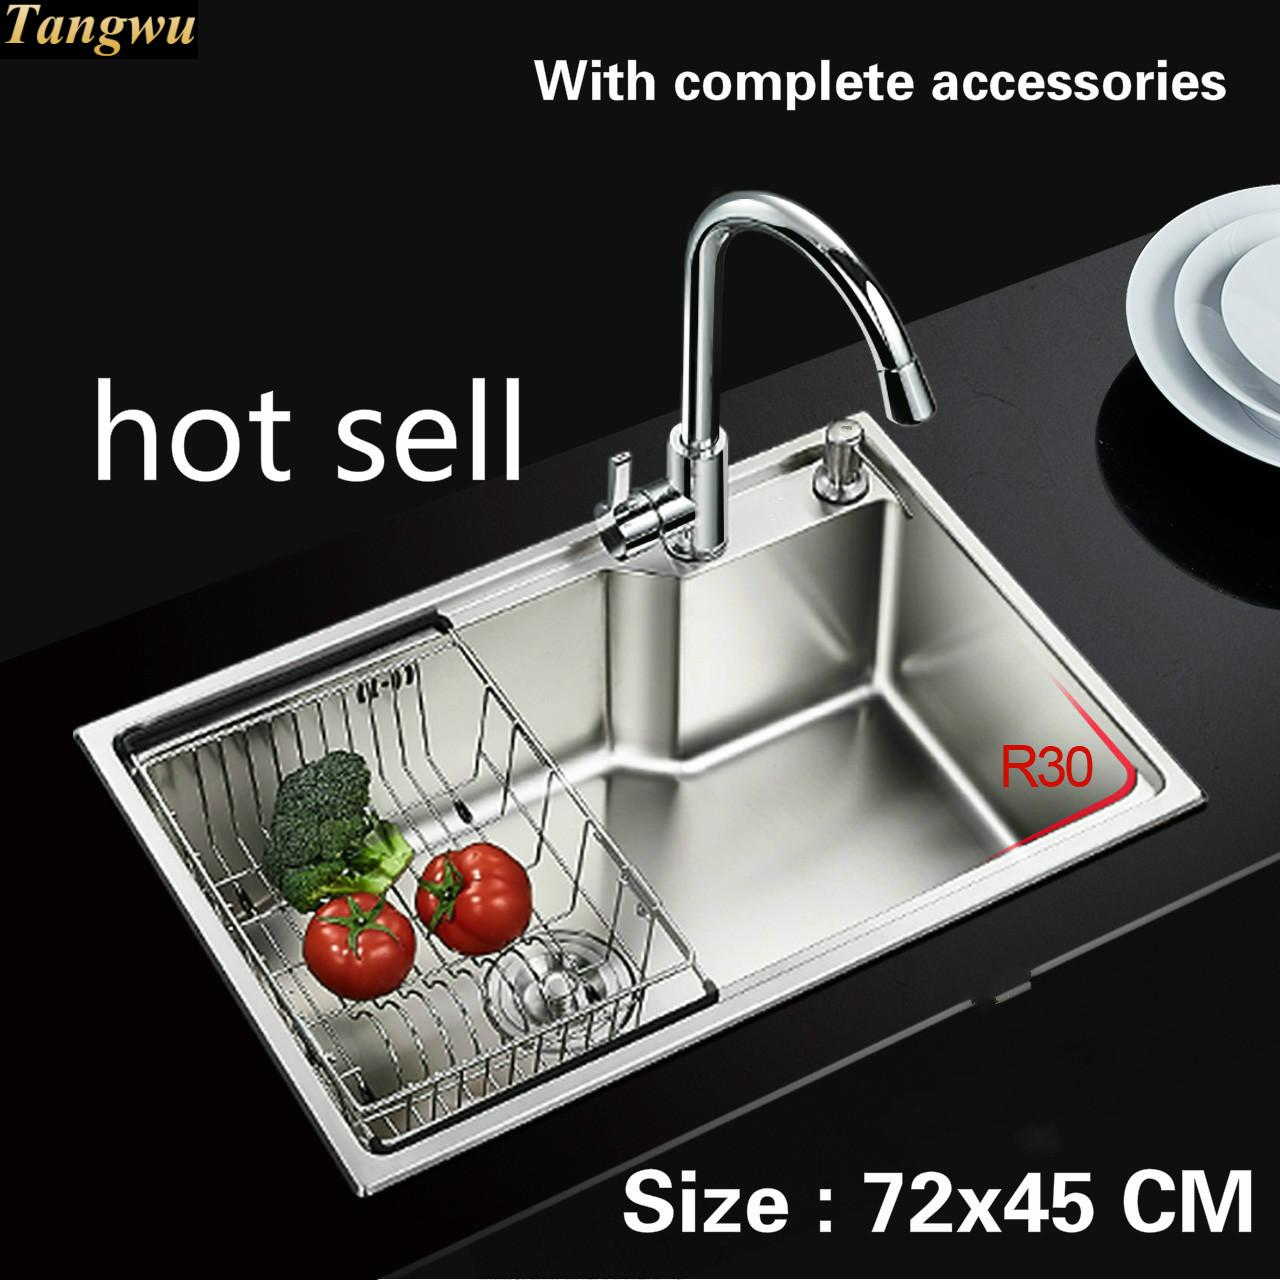 Free Shipping Food Grade 304 Stainless Steel Hot Sell Sink 0.8 Mm Thick Ordinary Single Trough Washing Dishes 72x45 CM